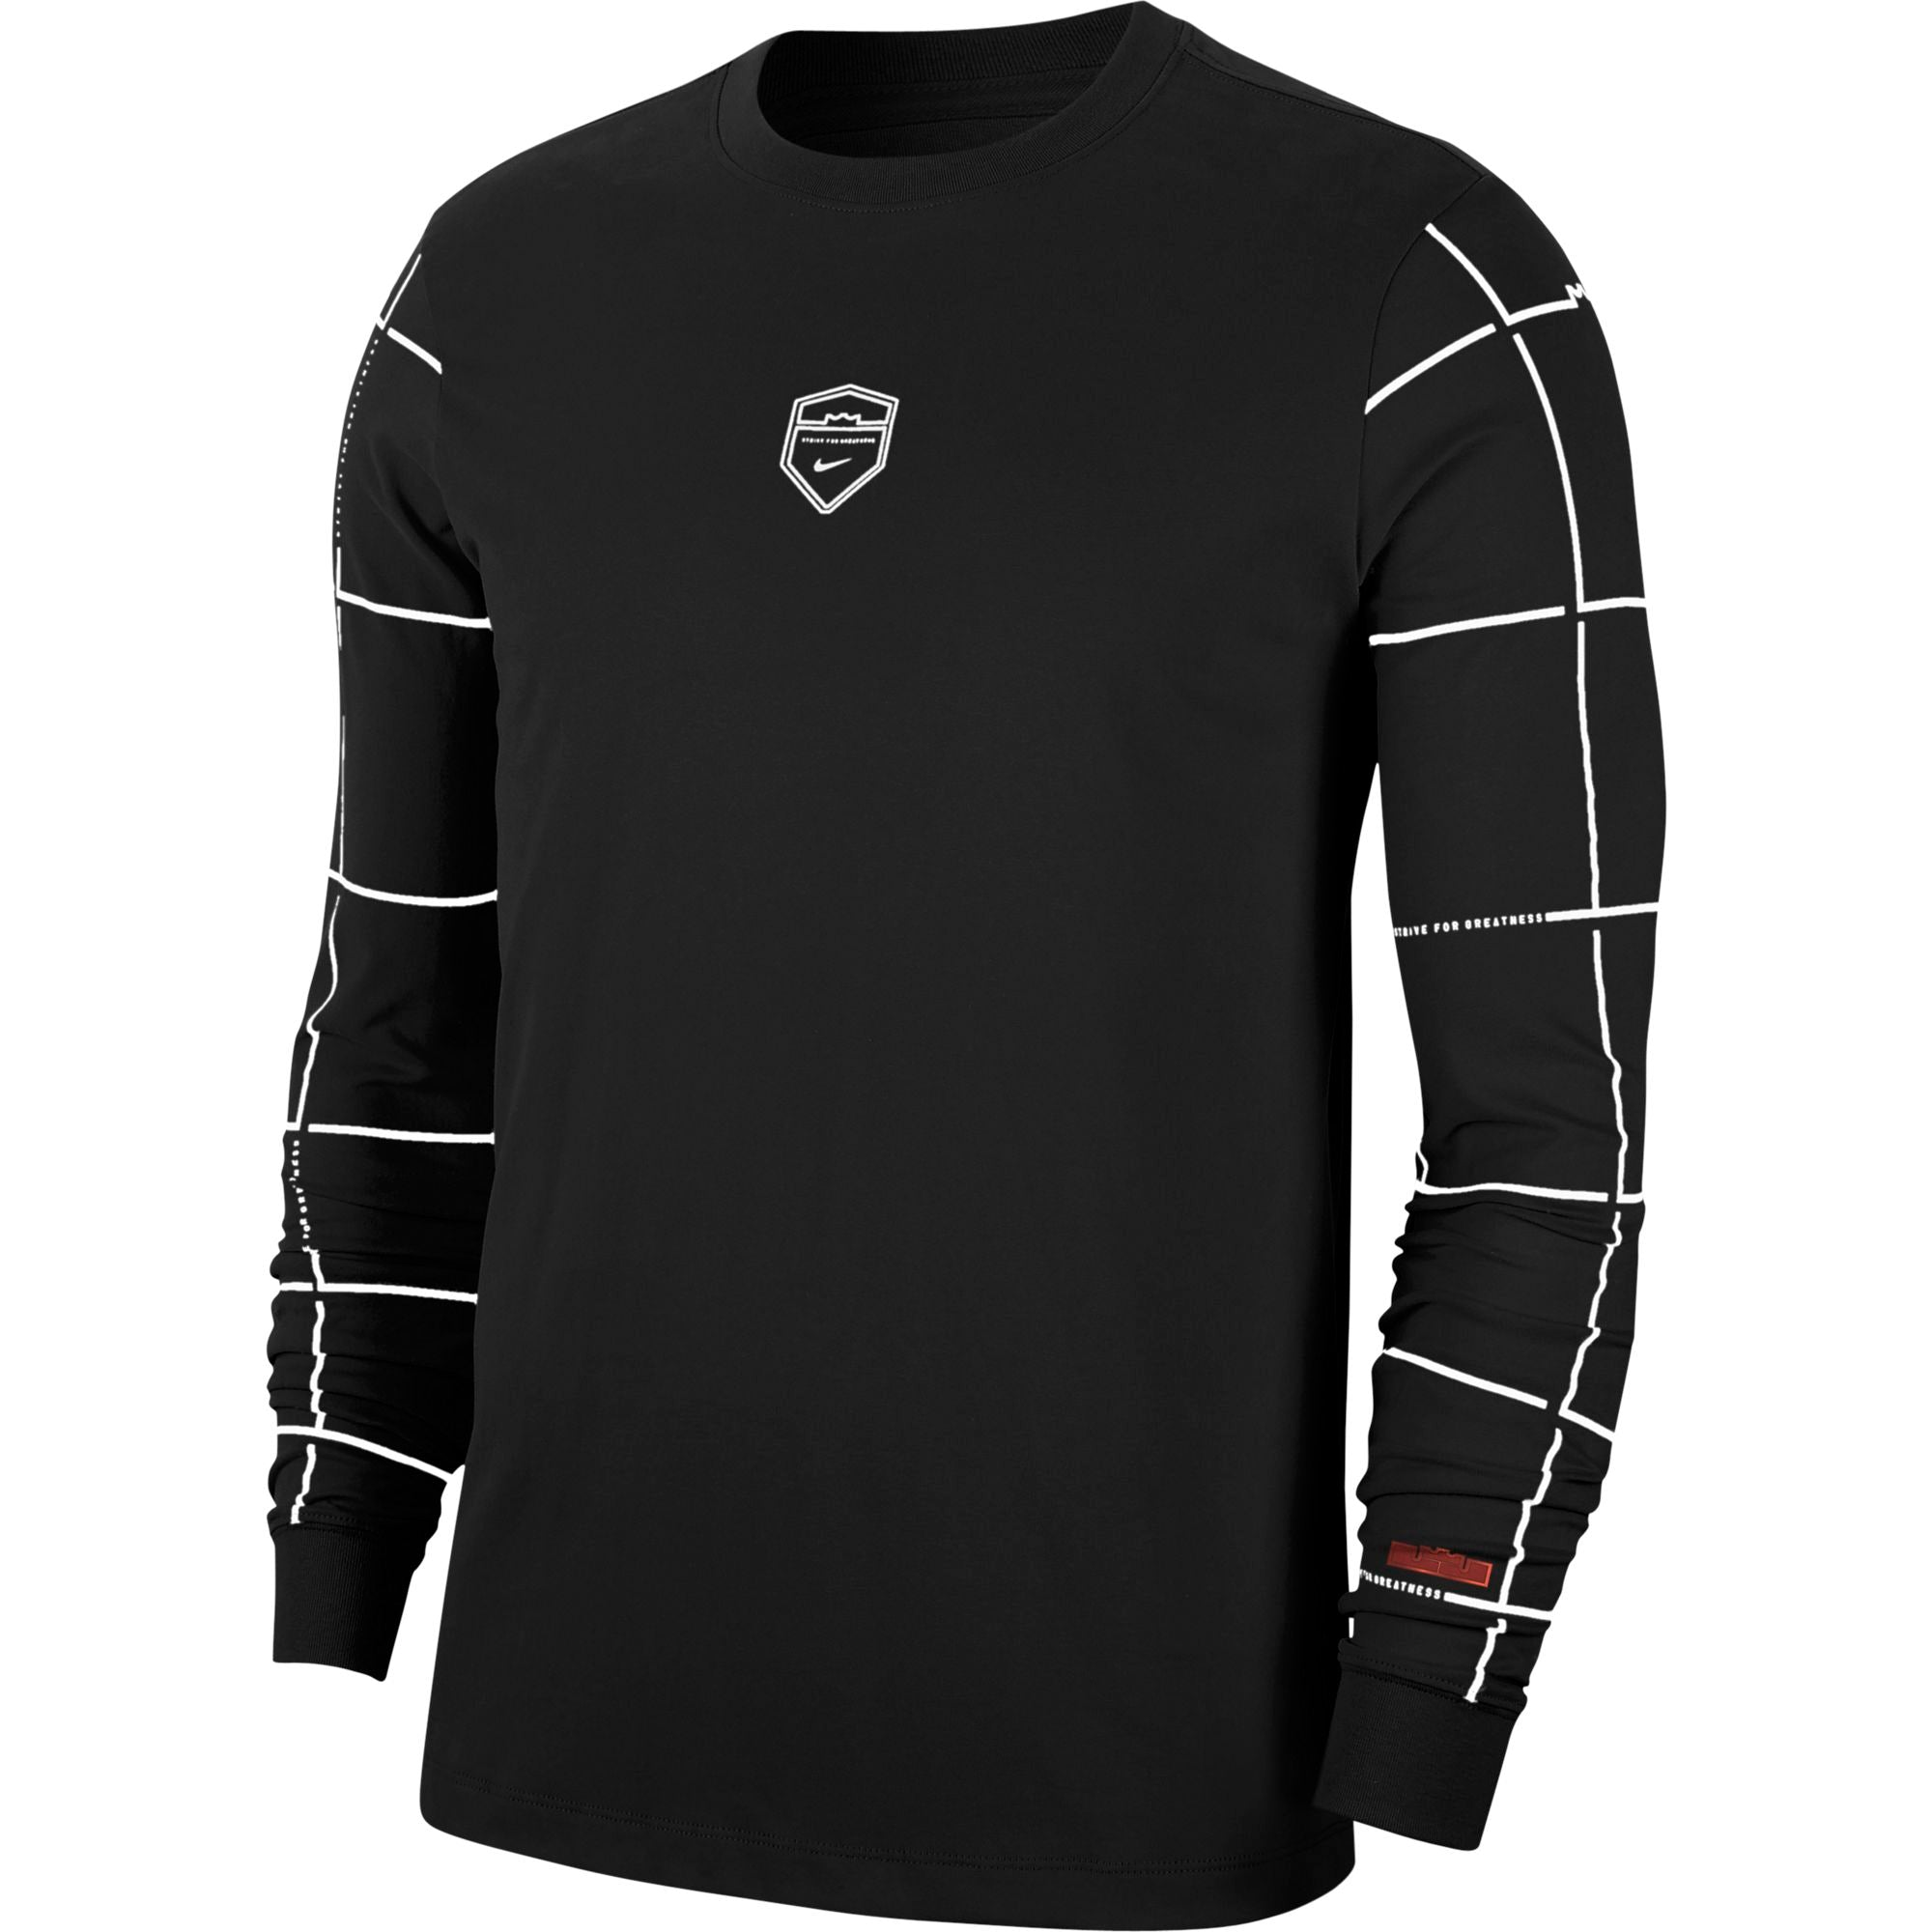 Nike Lebron Dri-fit Long-Sleeved Basketball Tee - NK-CD0925-010